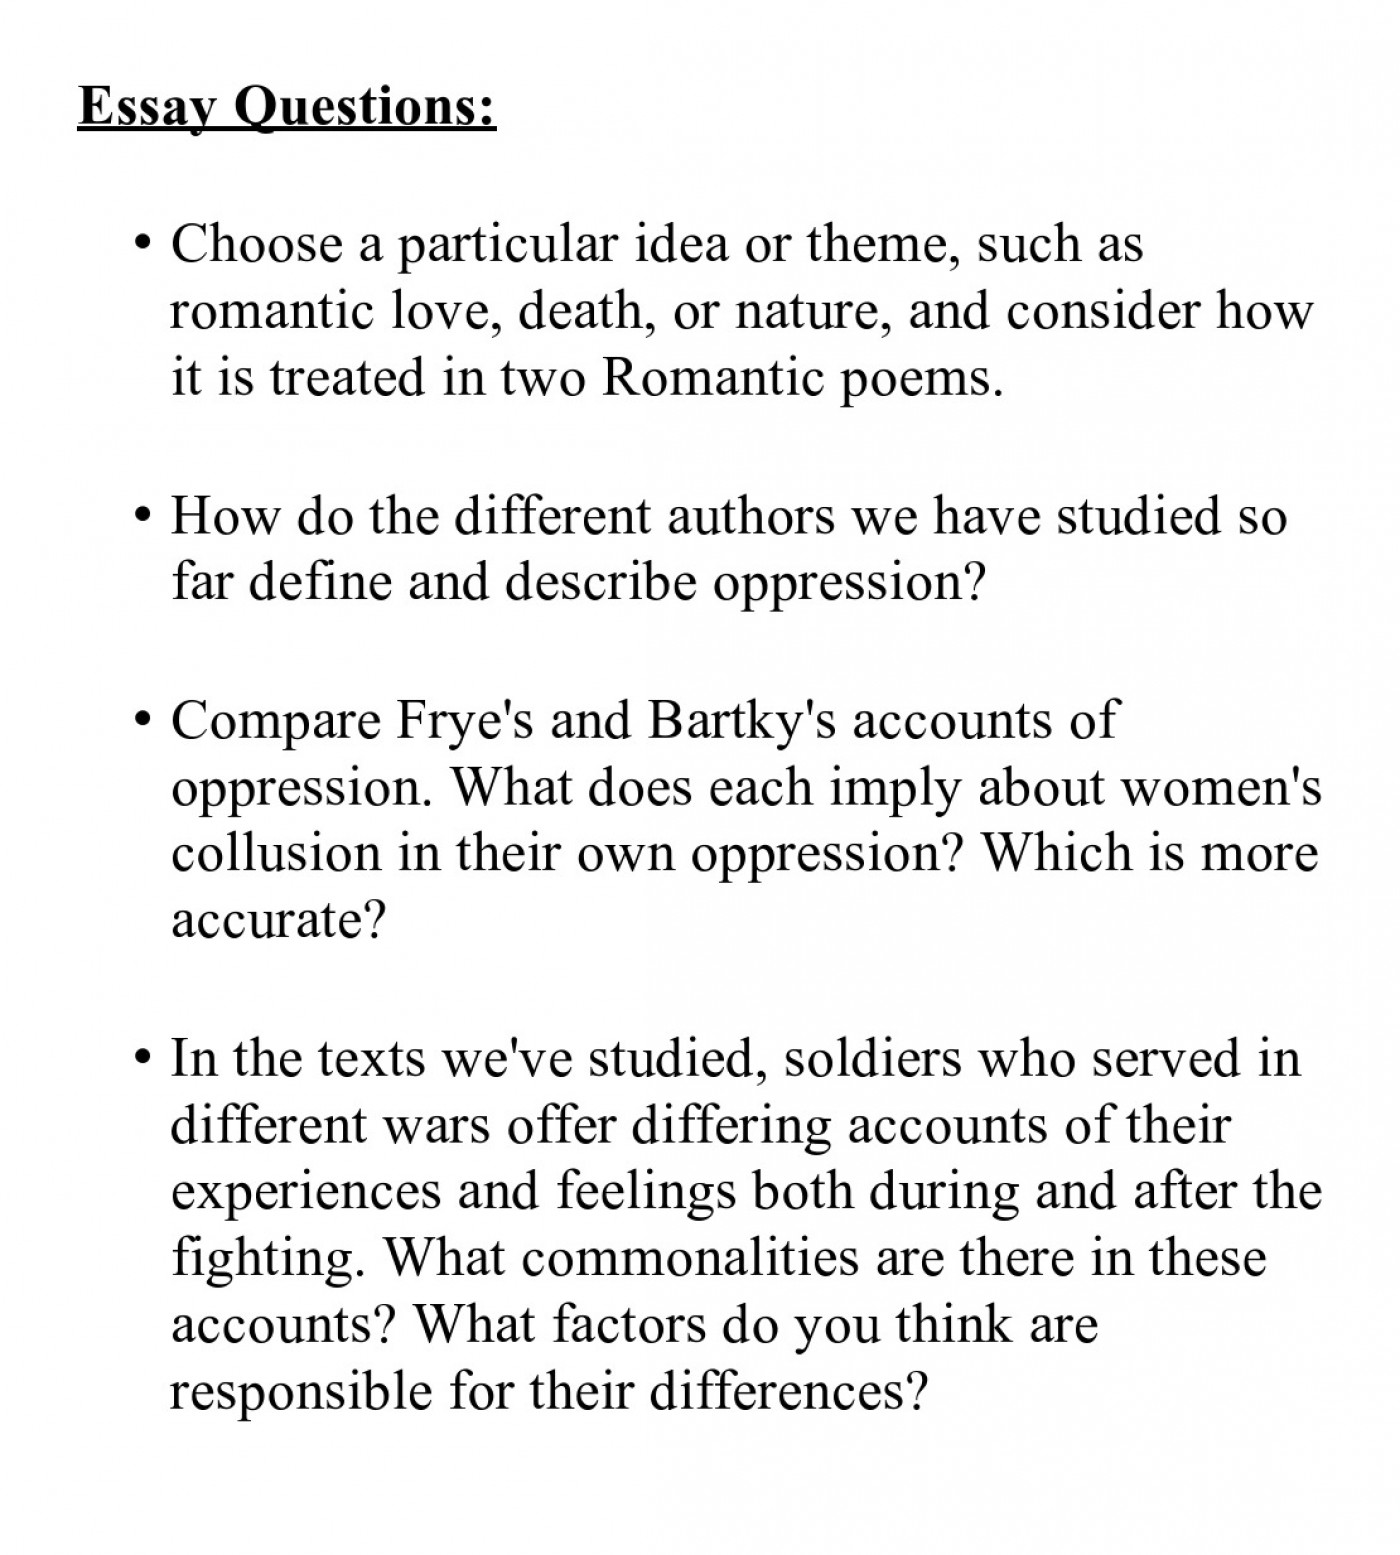 007 Essay Example Prompts Questions Best Persuasive College Creative Writing For Macbeth High School Economics 1400